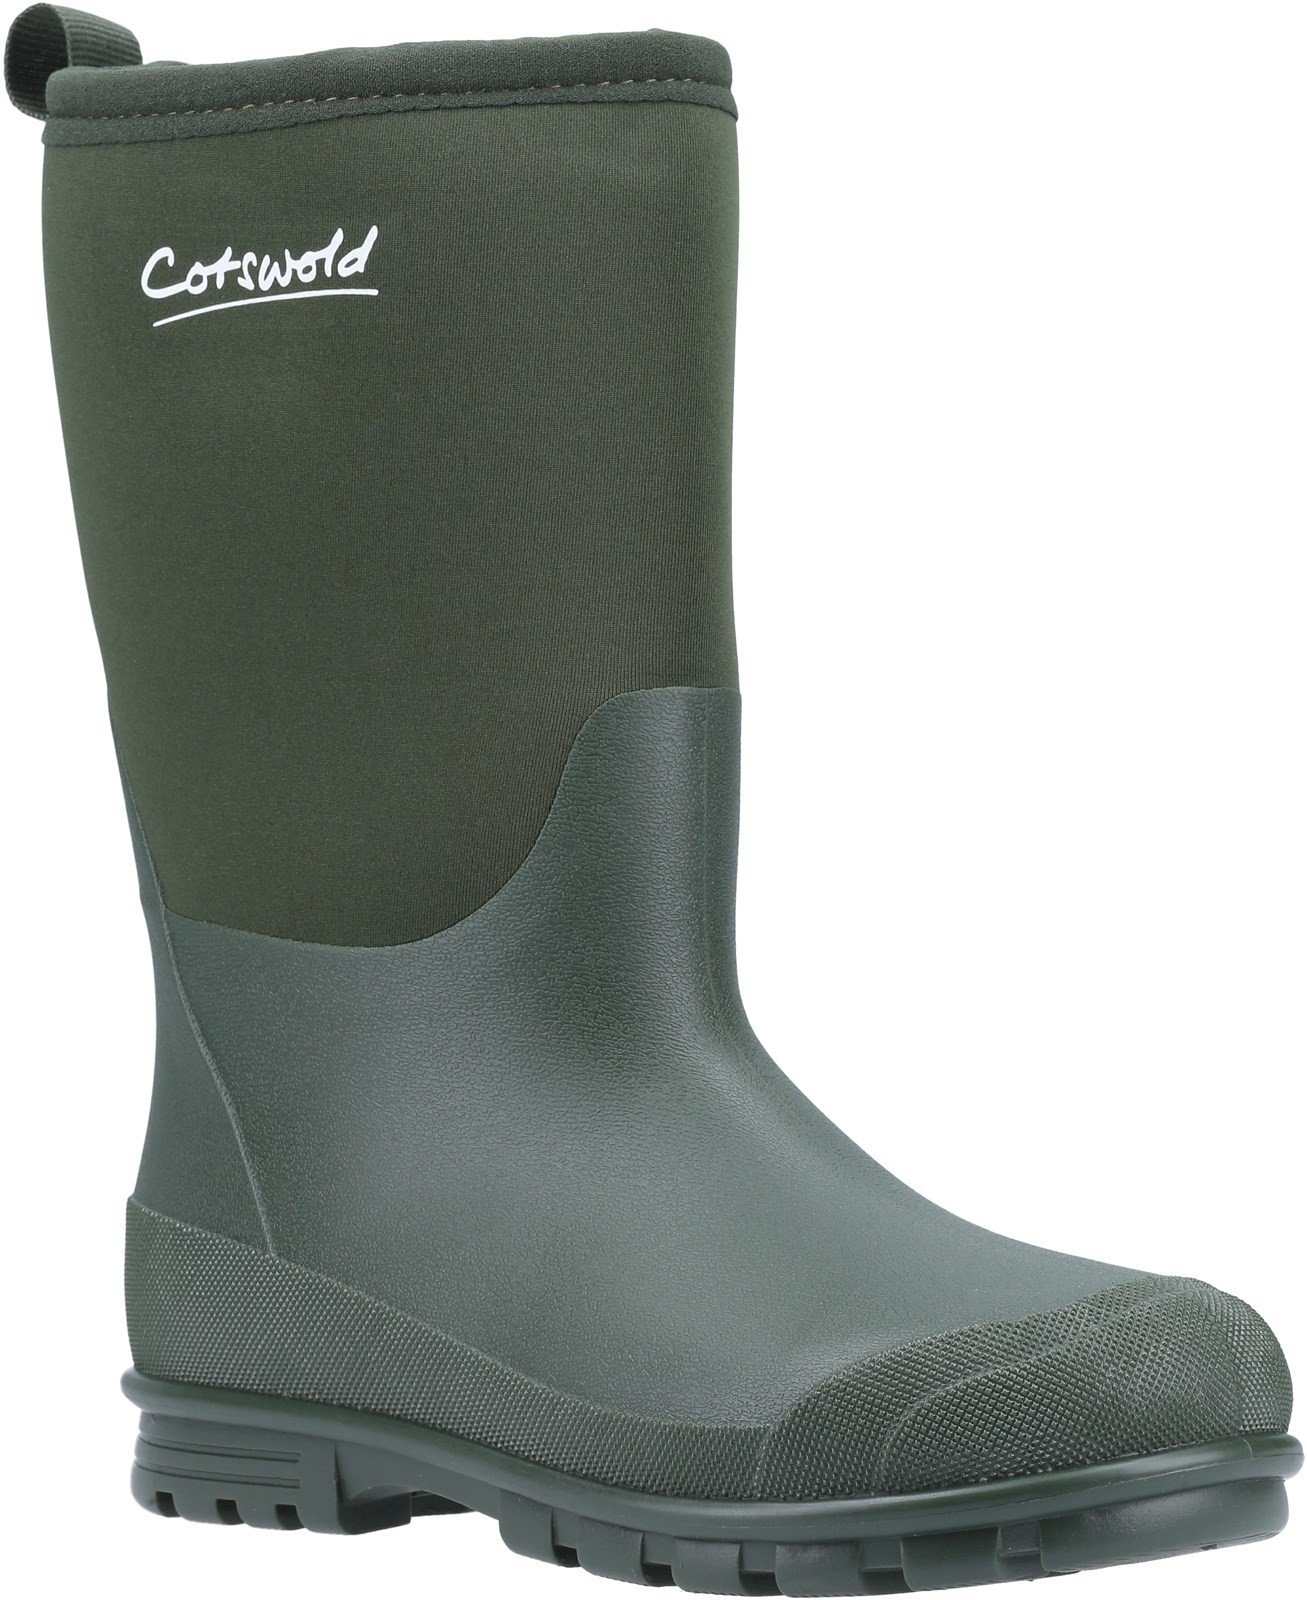 Cotswold Kids Hilly Neoprene Wellington Boot Various Colours 31492 - Green 11